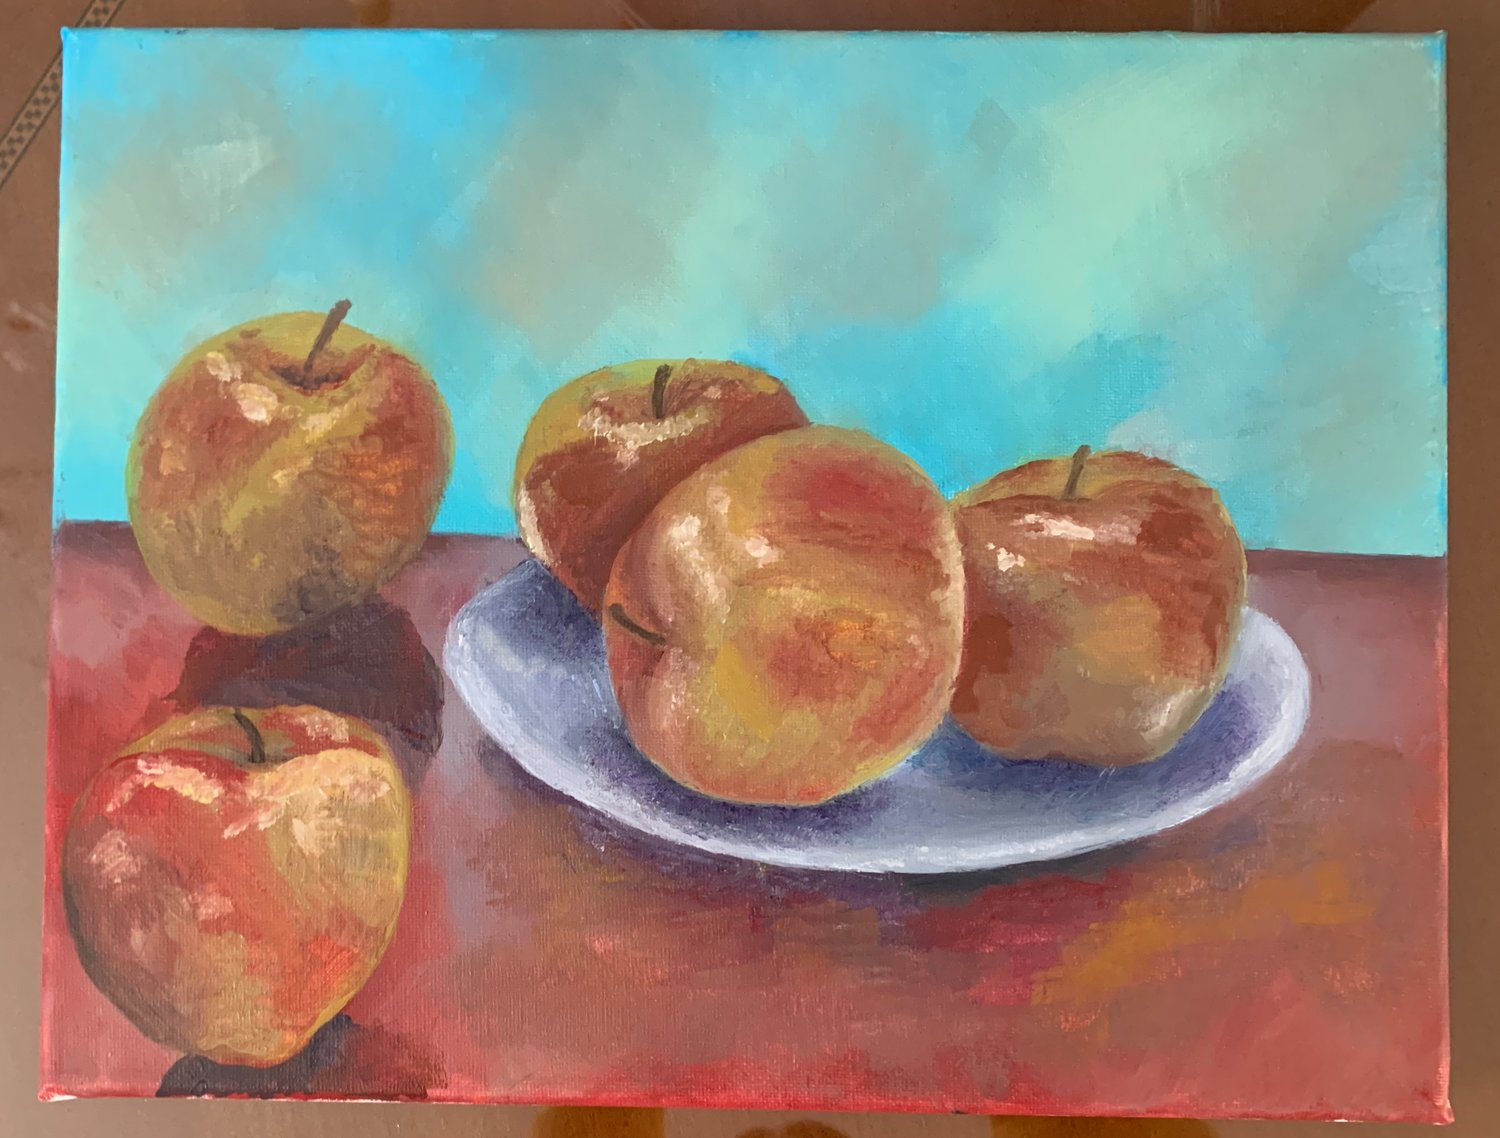 The author's depiction of apples symbolizes a sweet Jewish New Year.